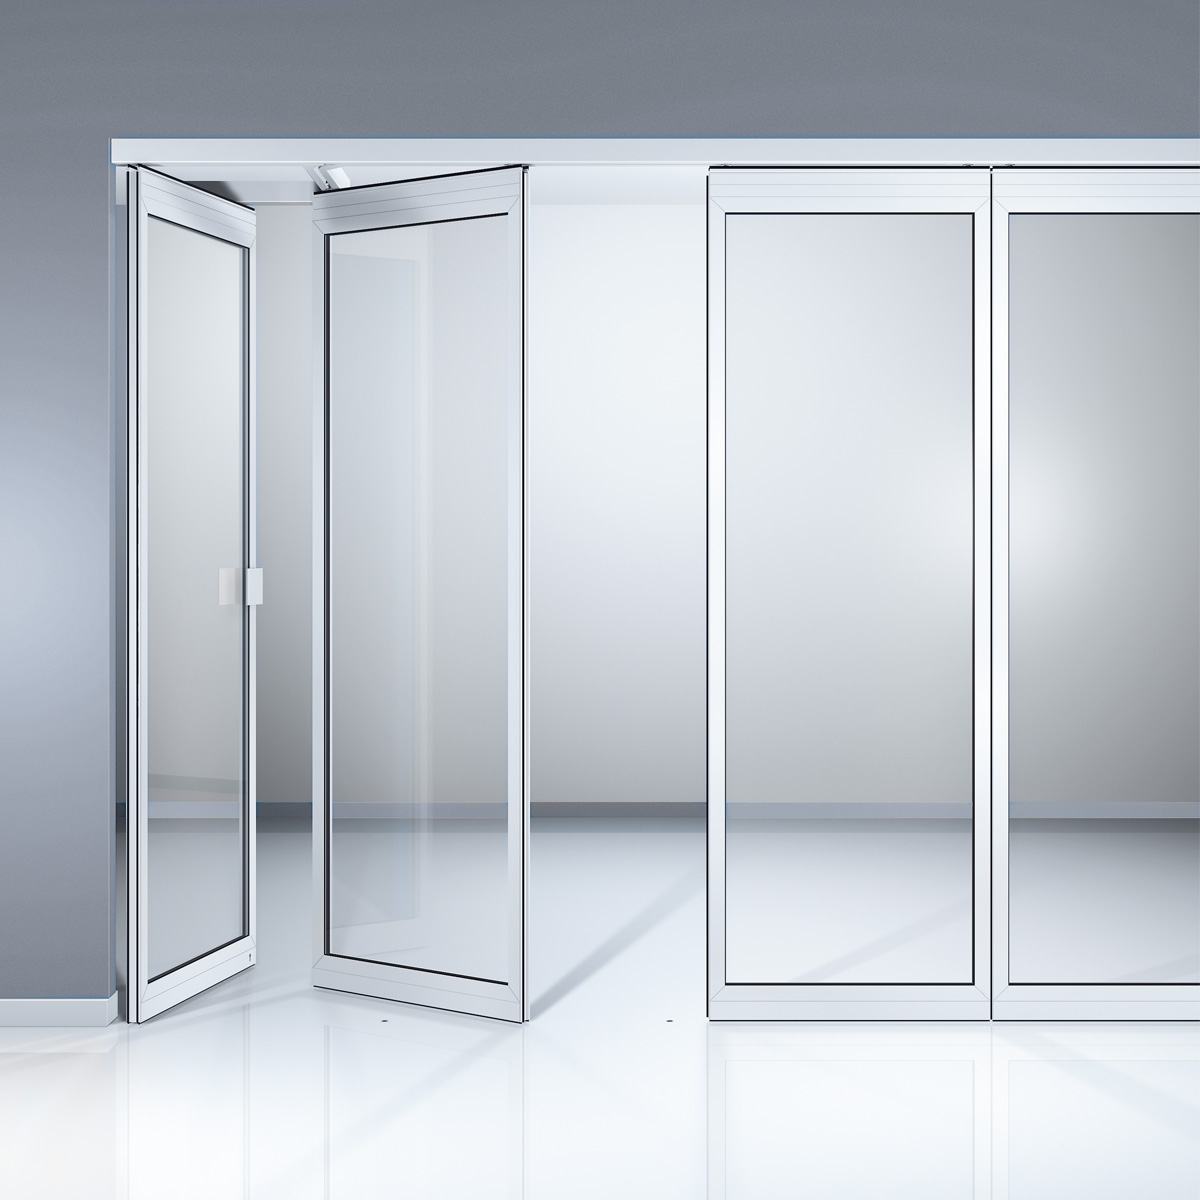 Glass partitions all purpose glazing Sliding glass partitions home